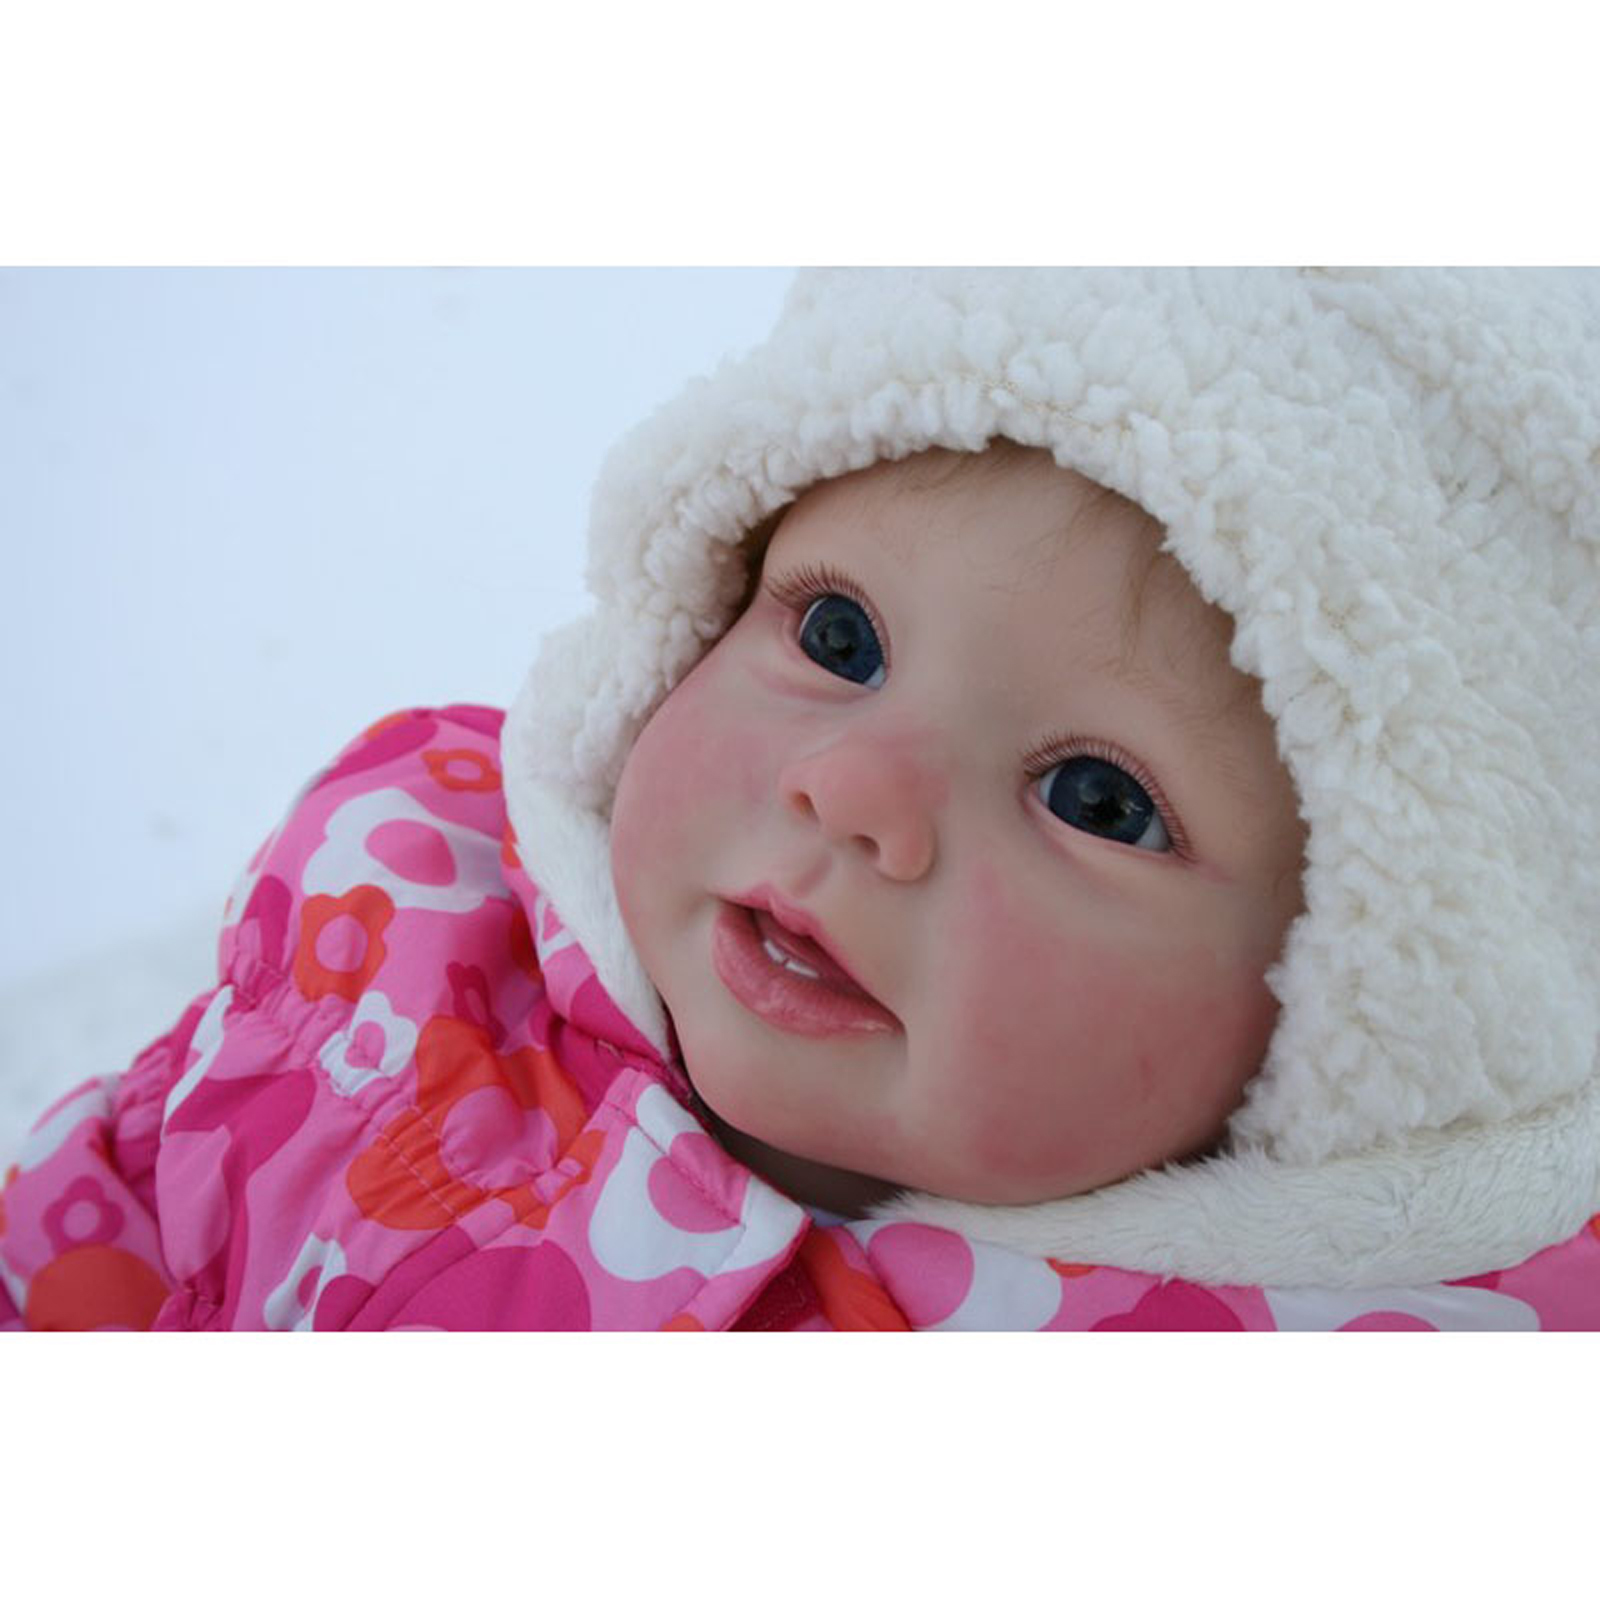 Reborn Doll Kits Cloth Body Fit for 28 inch Baby Toddler Dolls DIY Accessories